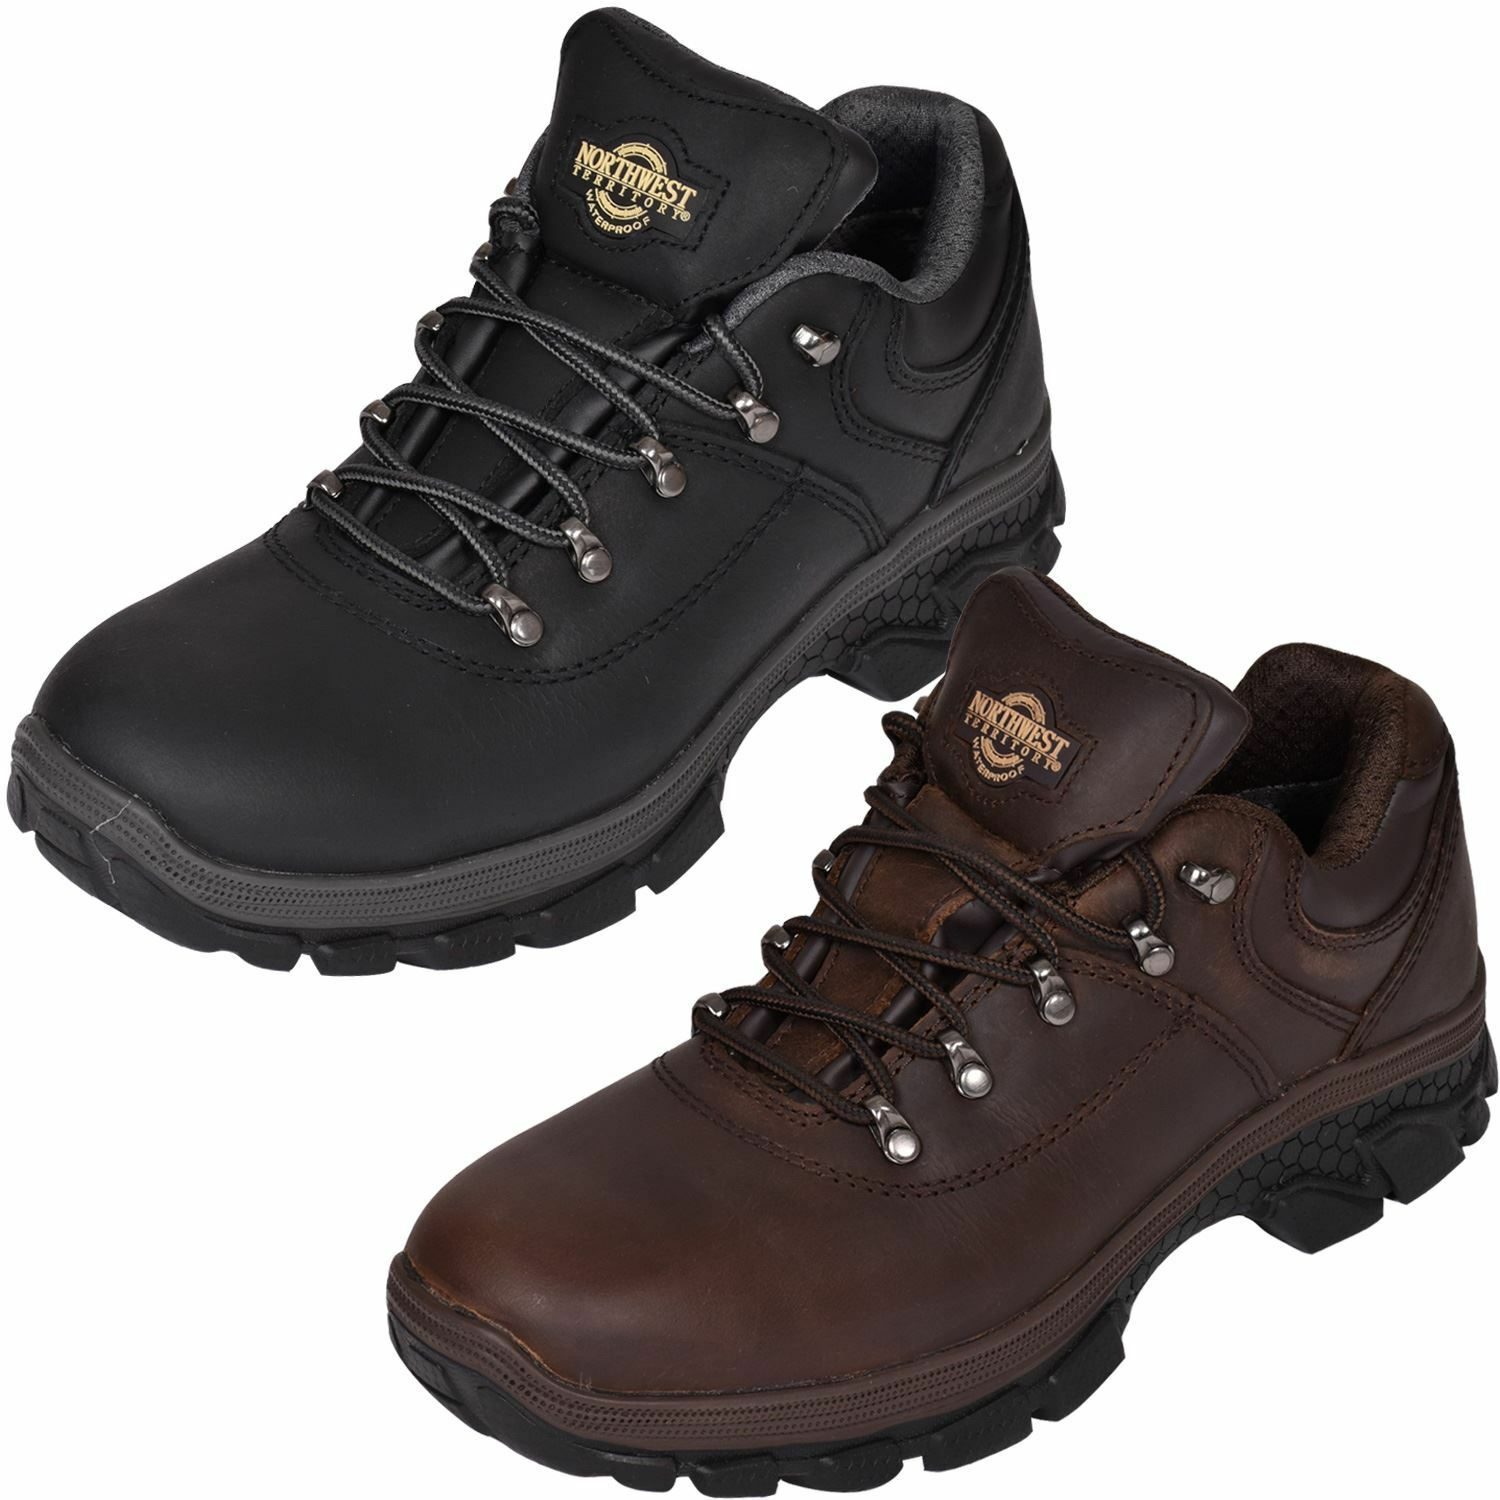 NORTHWEST Mens Leather Hiker Trainer Walking Trail Waterproof Ankle Boots Size